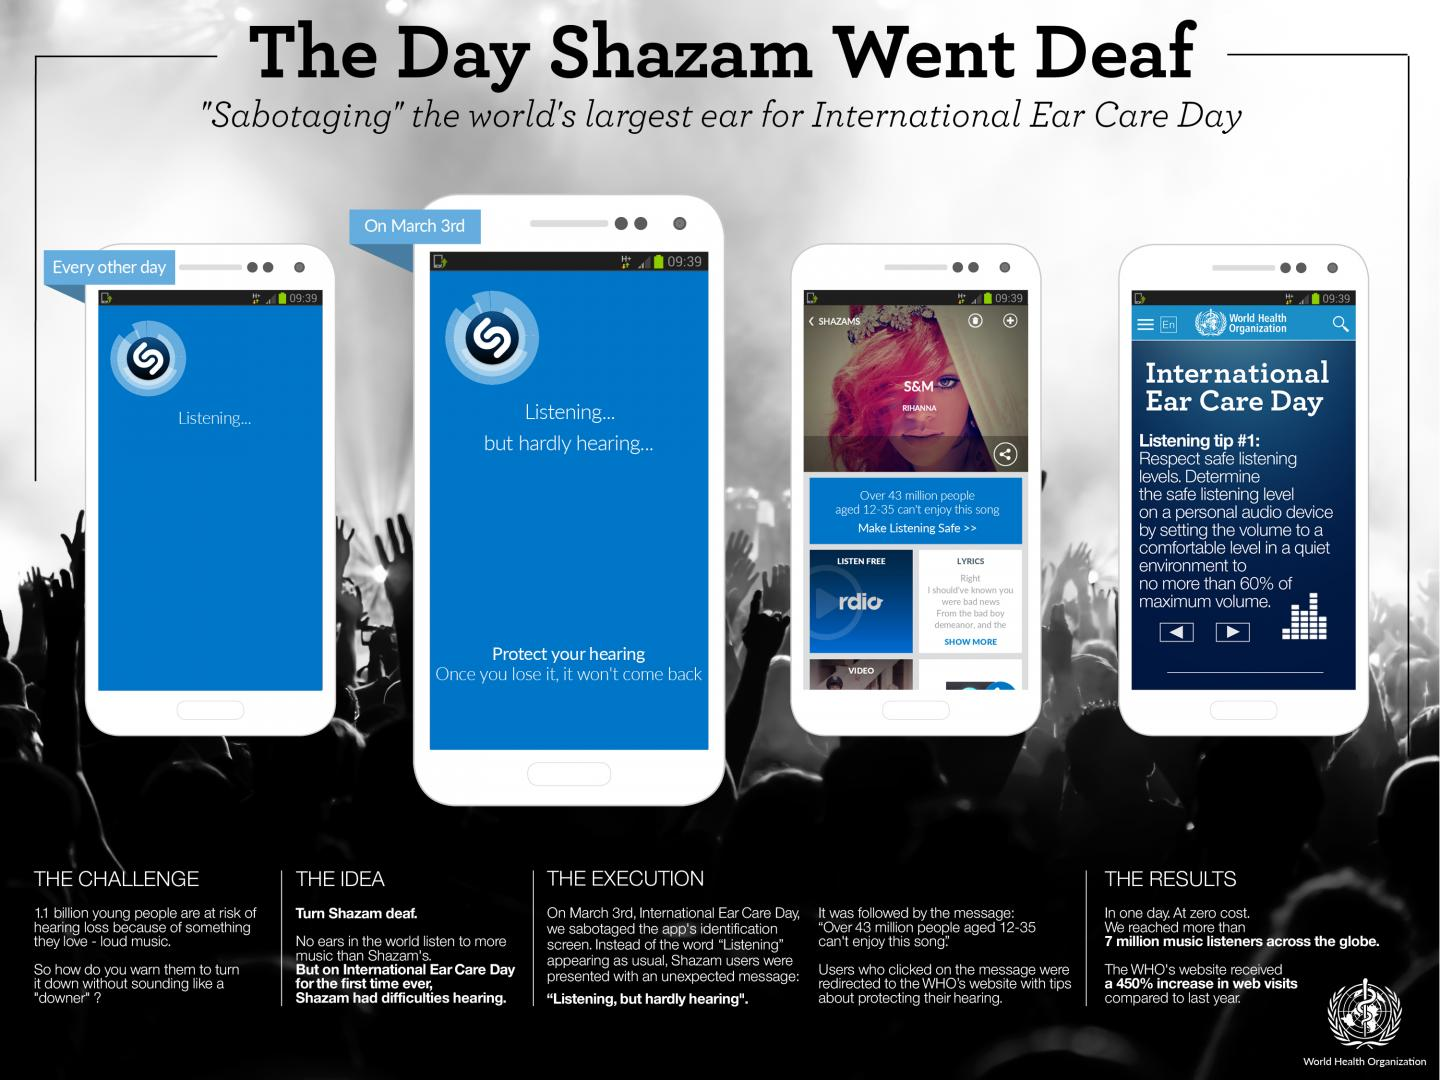 The Day Shazam Went Deaf Thumbnail